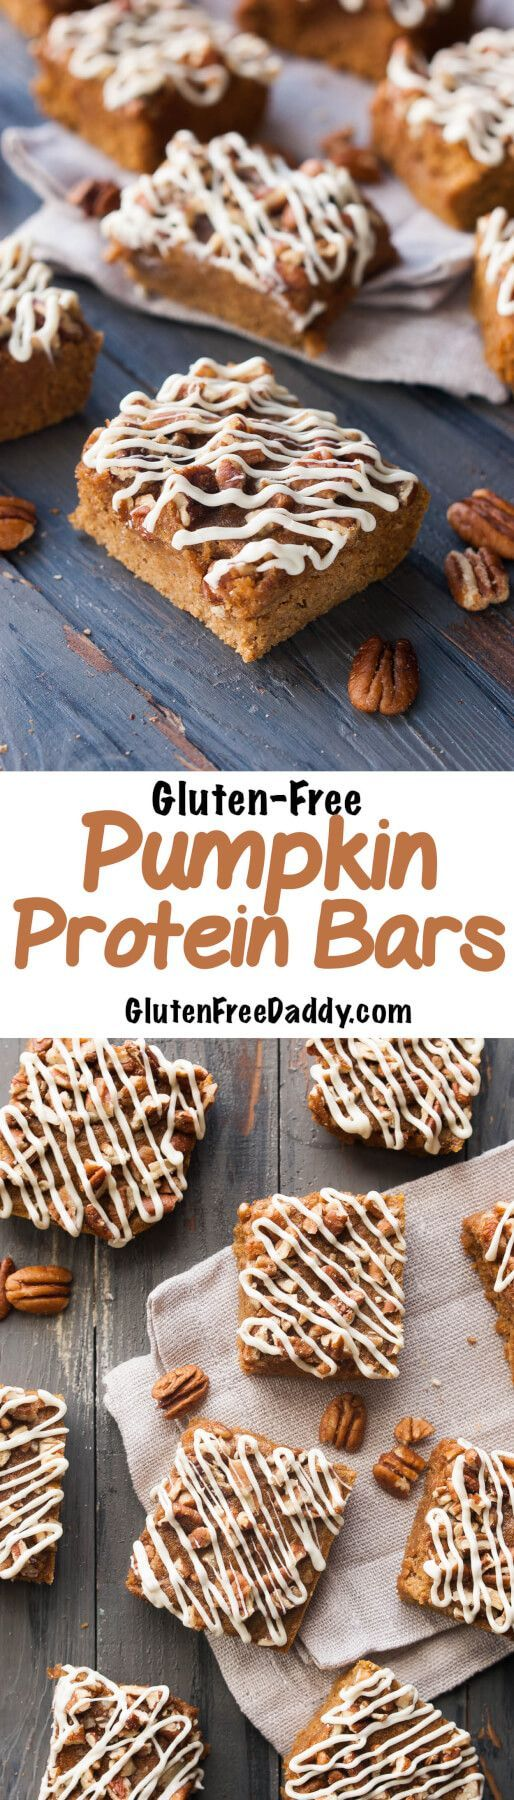 I love to make these pumpkin protein bars because you can't taste the protein powder, so myself and kids actually take our protein powder. These are the perfect lunch treat!